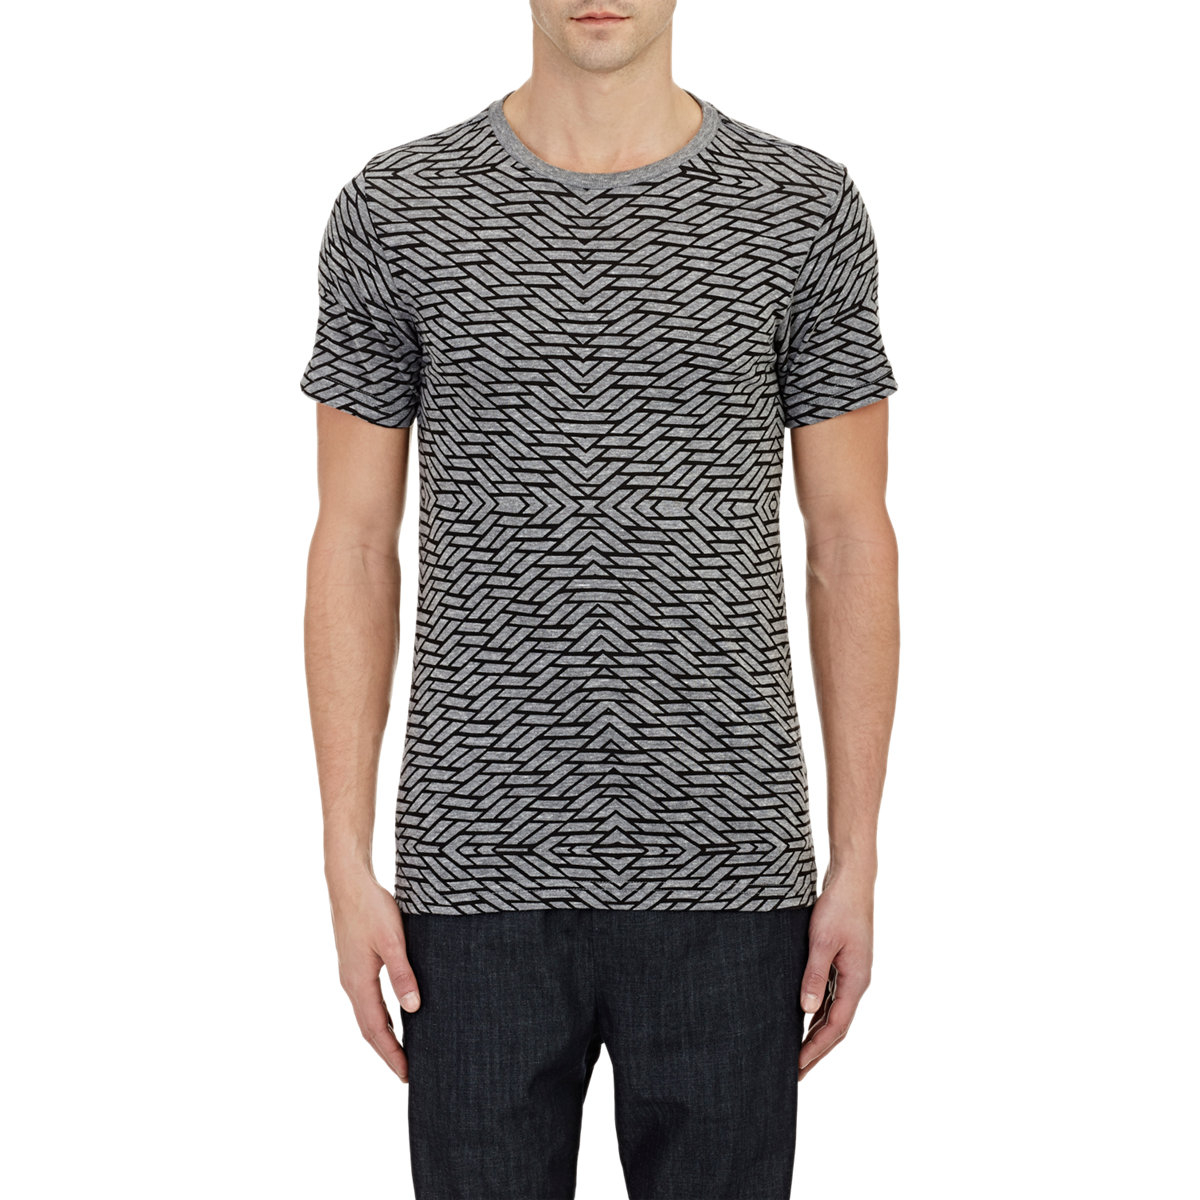 Barneys new york geometric print t shirt in gray for men for New york printed t shirts